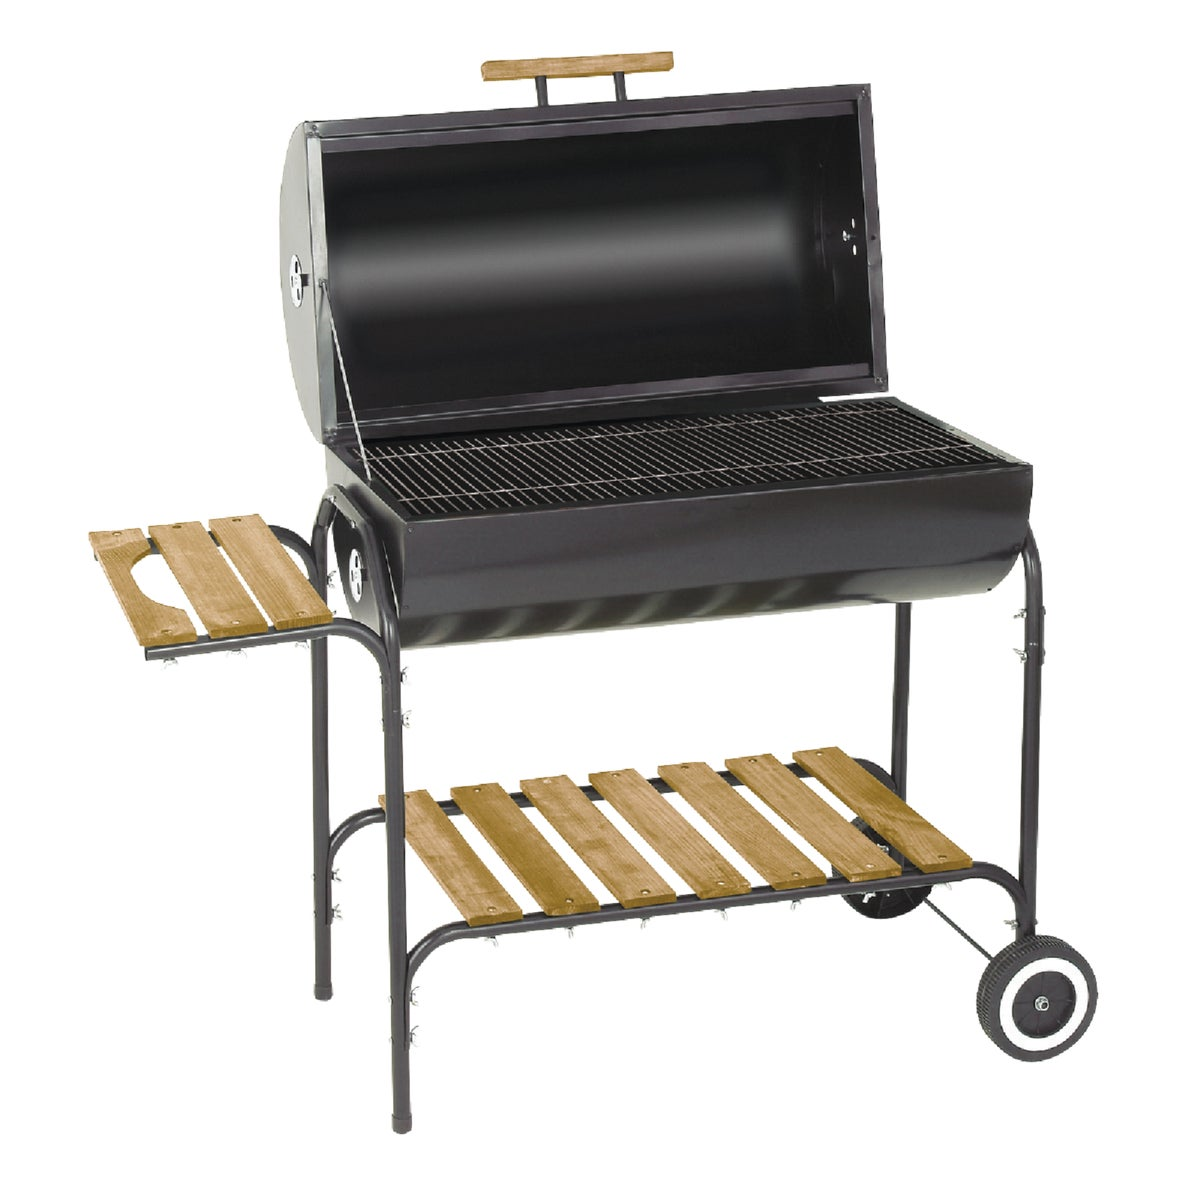 BARREL CHARCOAL GRILL - 20530DI by Kay Home Prods